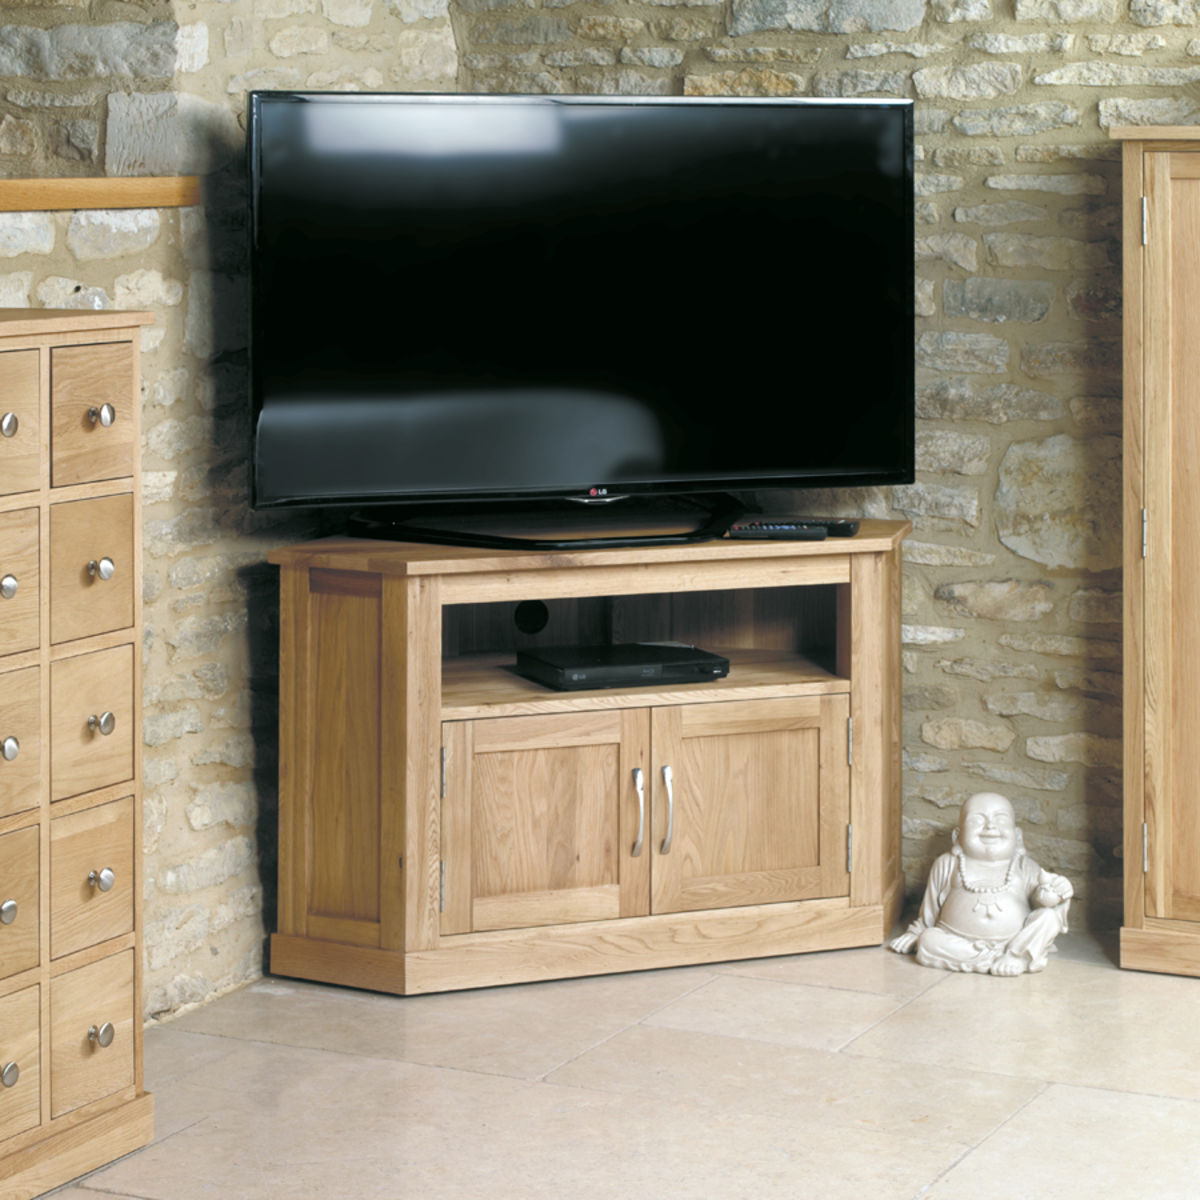 Mobel Oak Corner Television Cabinet Was 163 410 00 Now 163 359